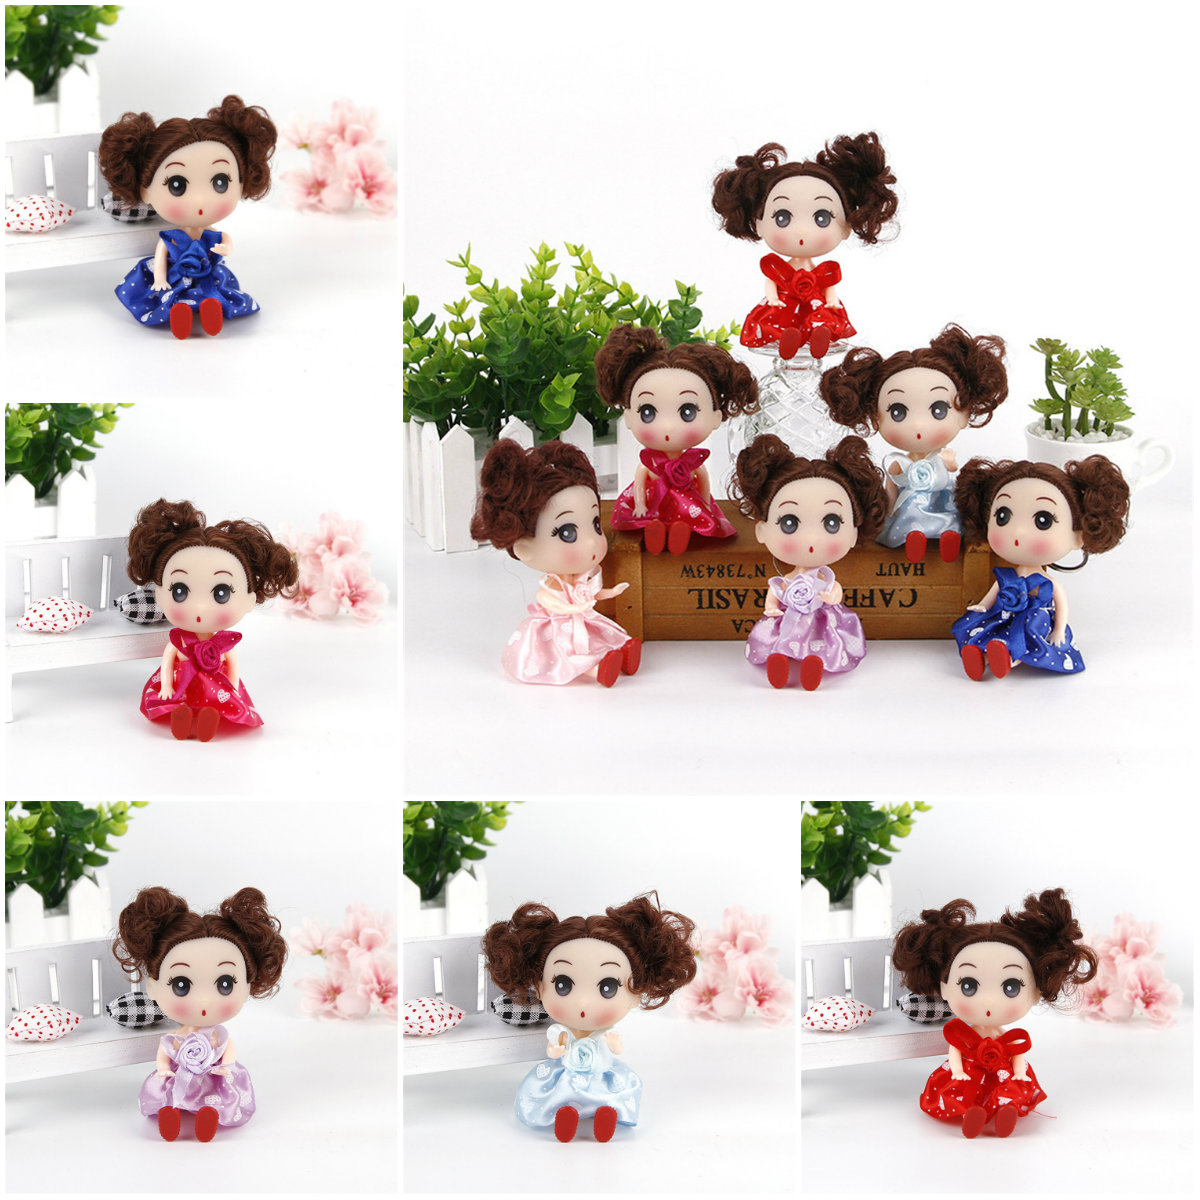 1 Pc 12cm Confused Doll Wedding Dolls Girl Toys Baby Doll Creative Children's Toys Online Shop